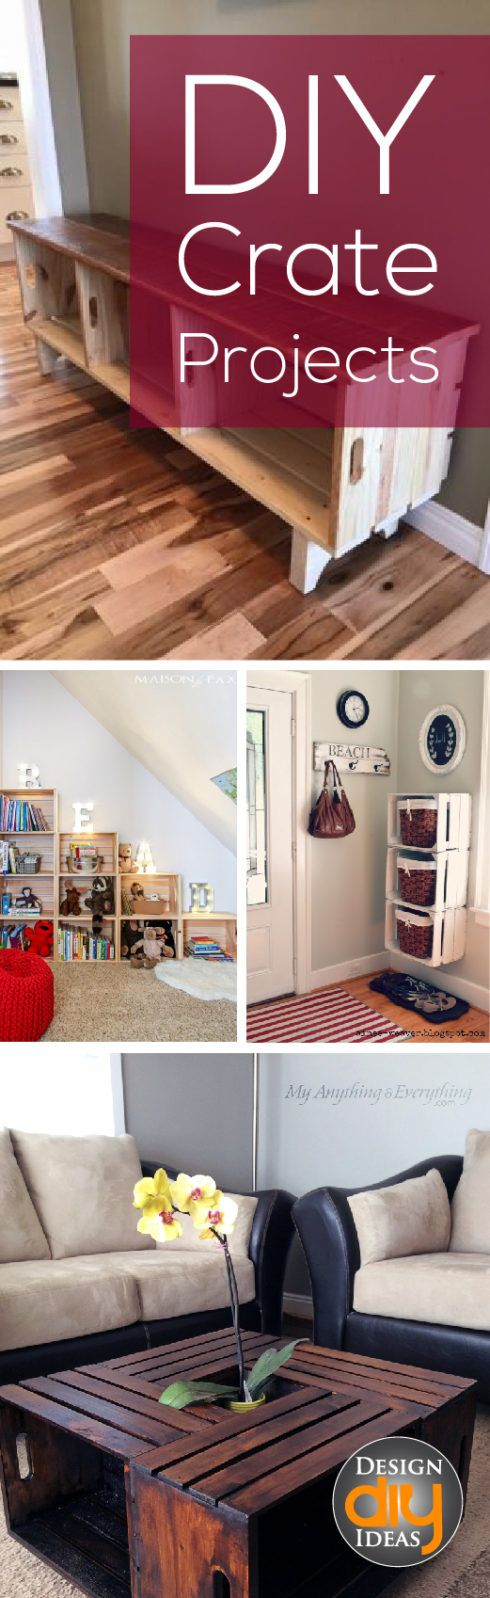 25 best ideas about the check on pinterest check to for Diy crafts with things around the house